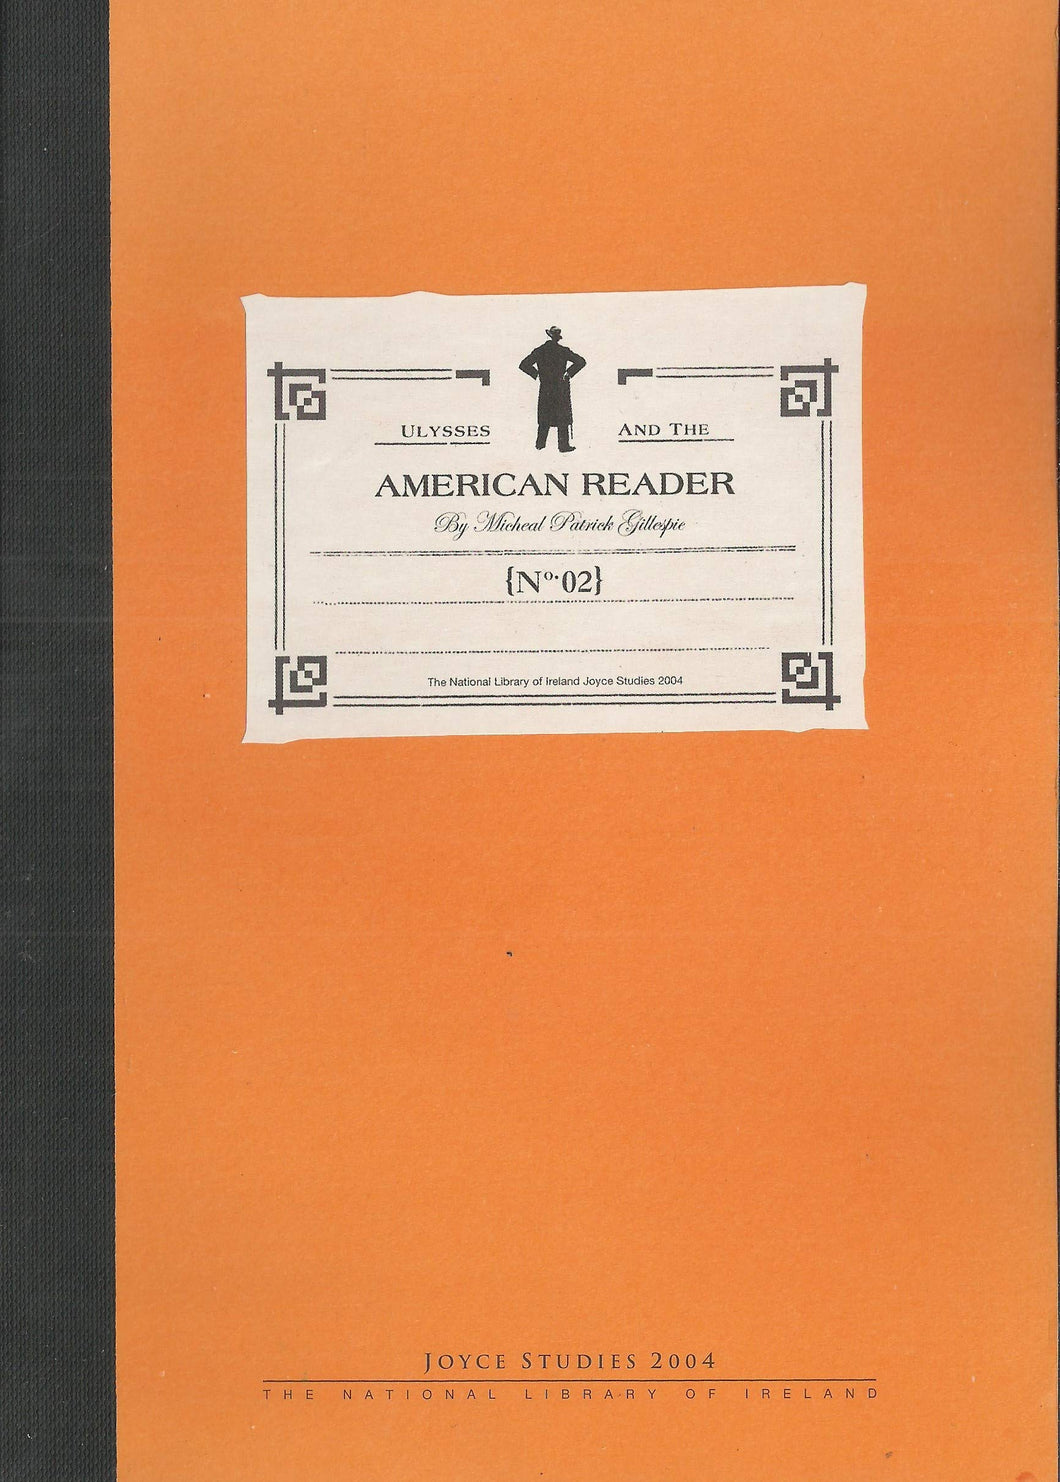 Ulysses and the American Reader - The National Library of Ireland Joyce Studies 2004